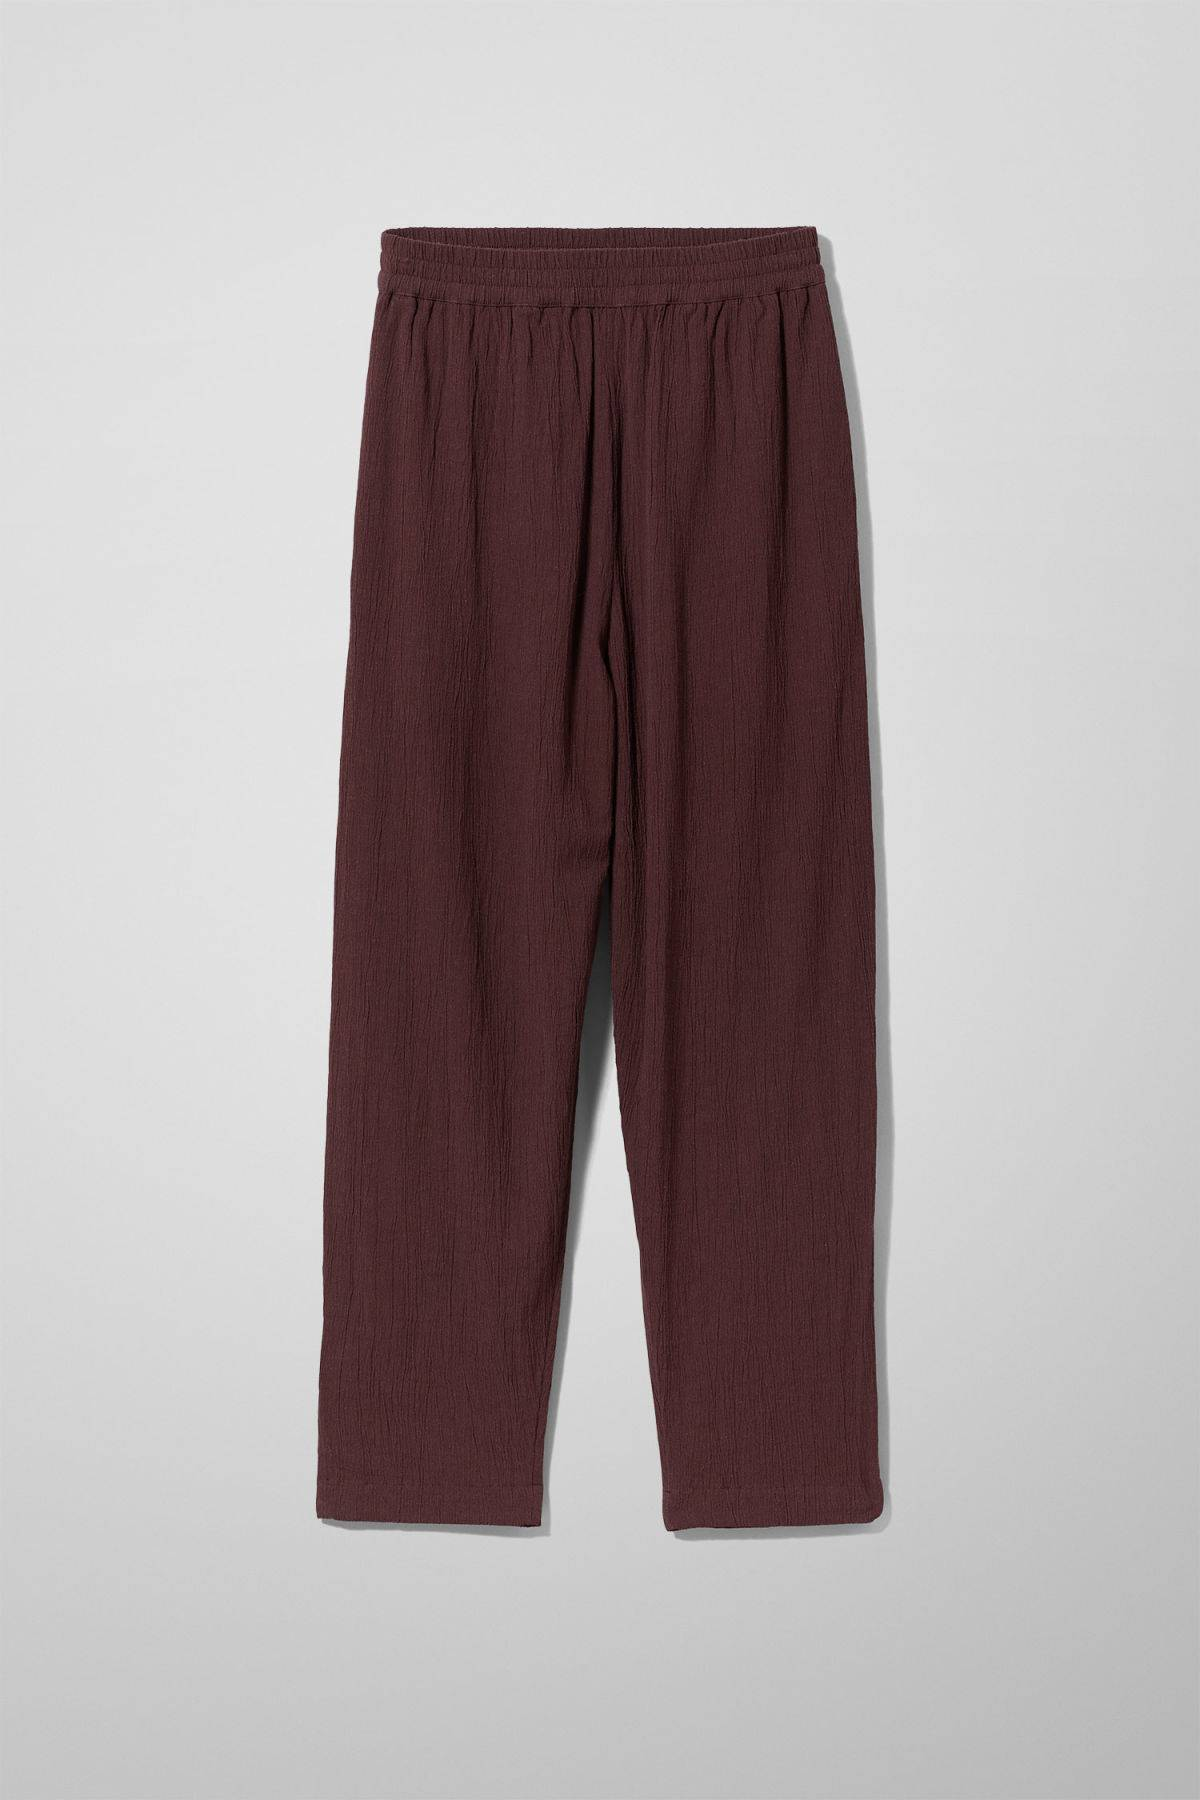 Image of Barb Casual Trousers - Red-44